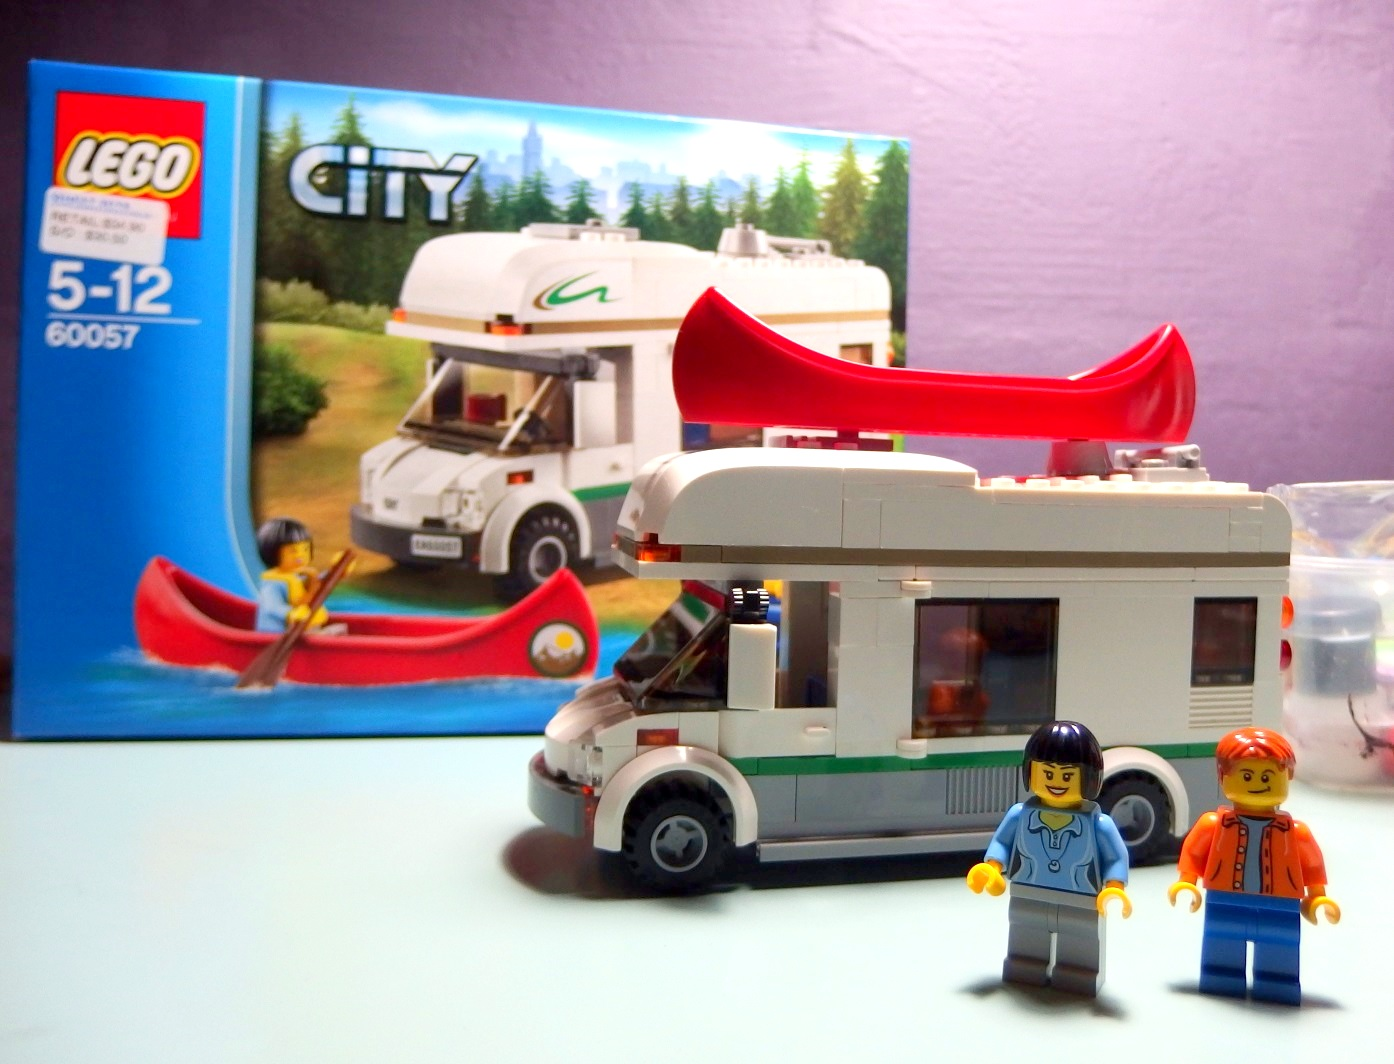 Lego City Camper Van 60057 Build Review Brickin Awesome